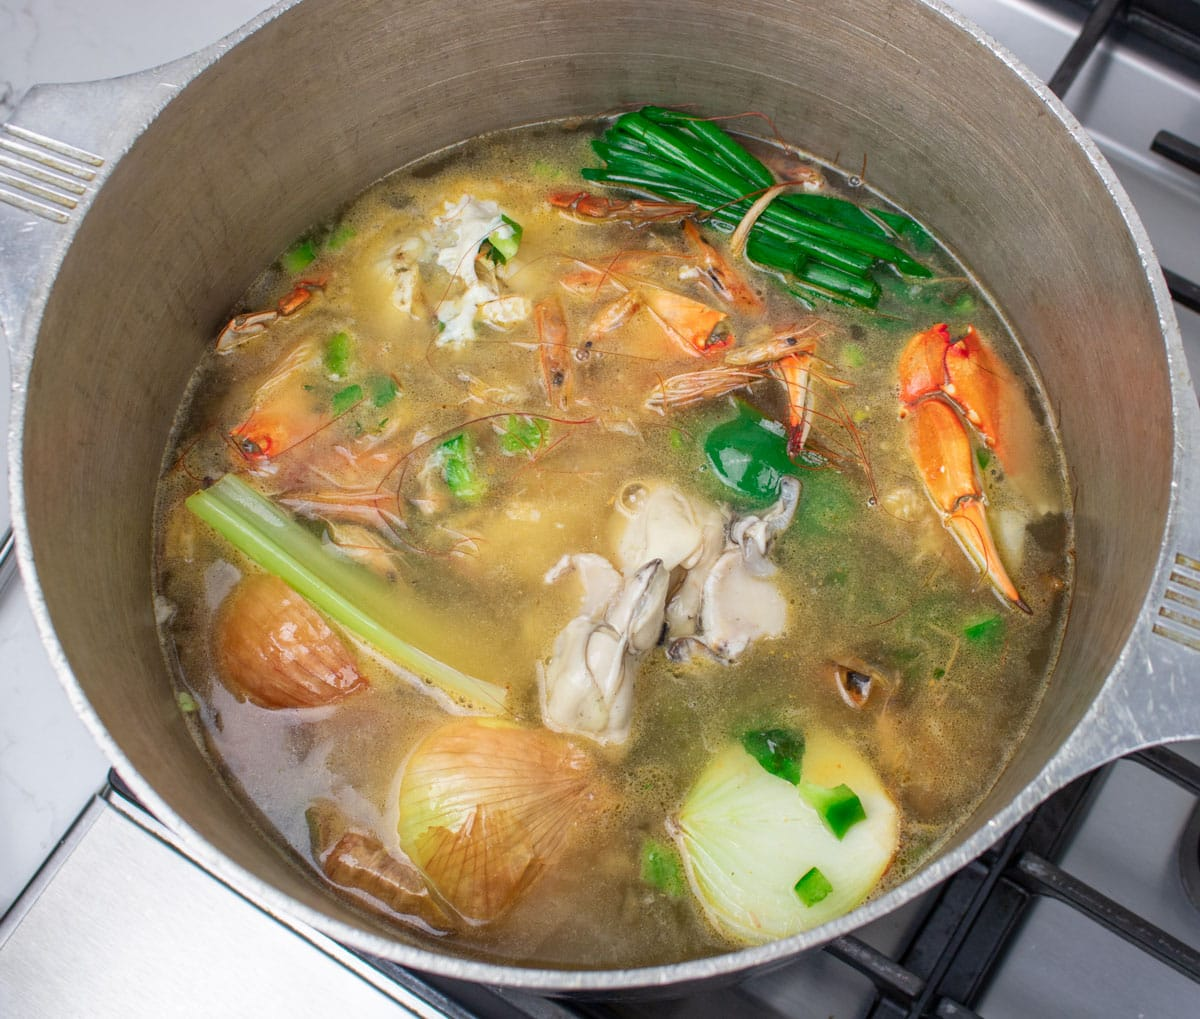 seafood stock simmering in a stockpot